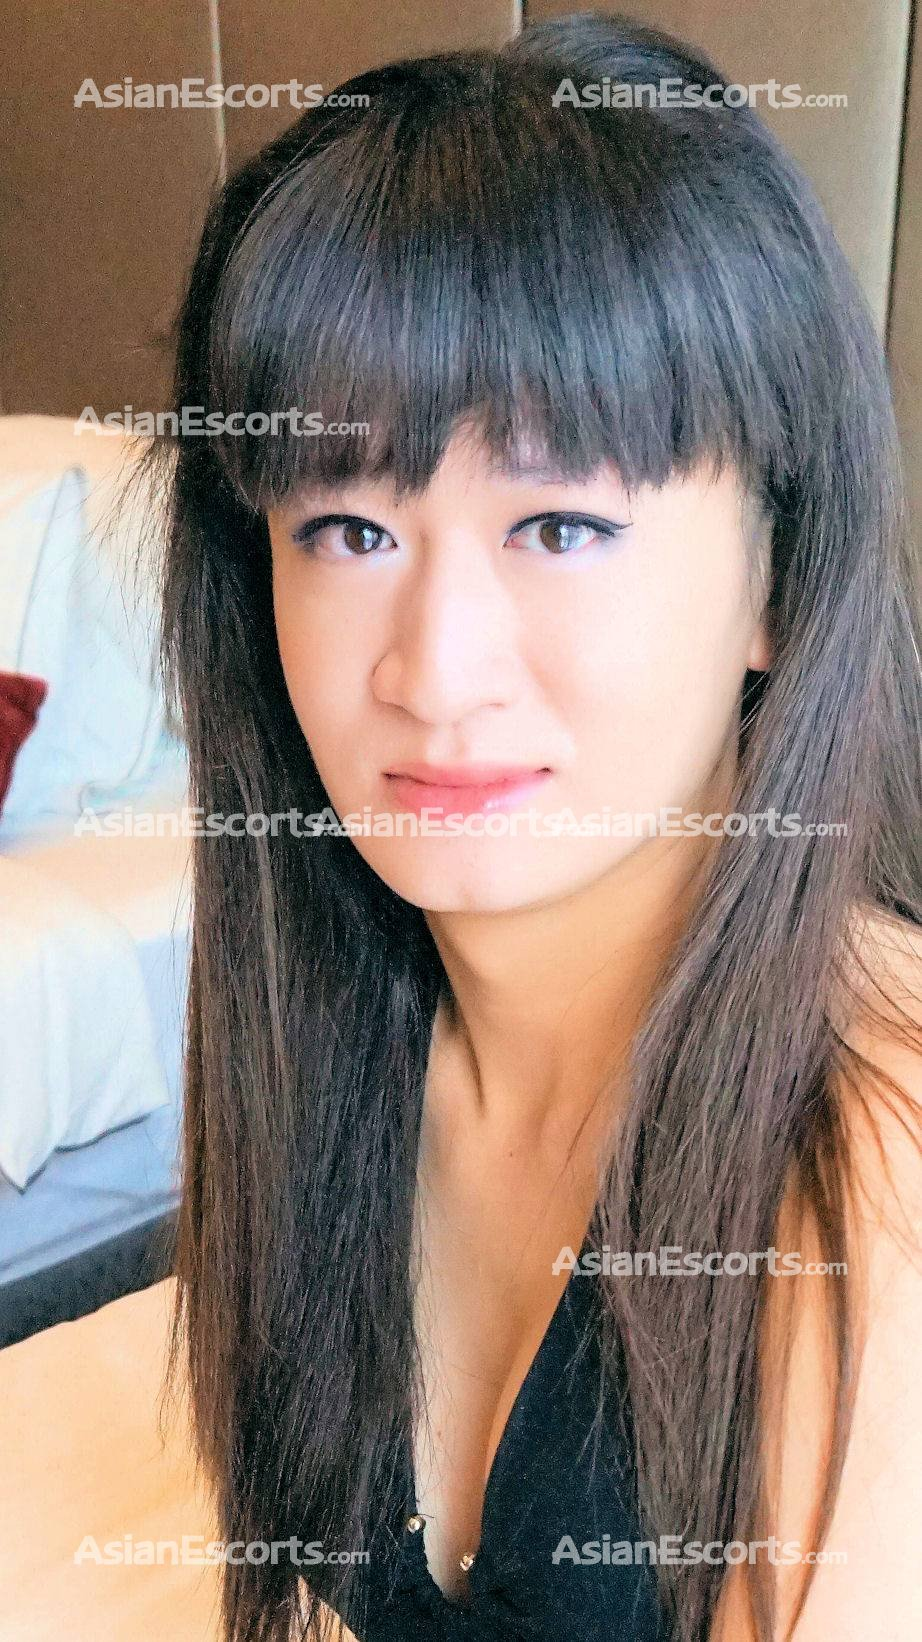 private asian girls classified ads